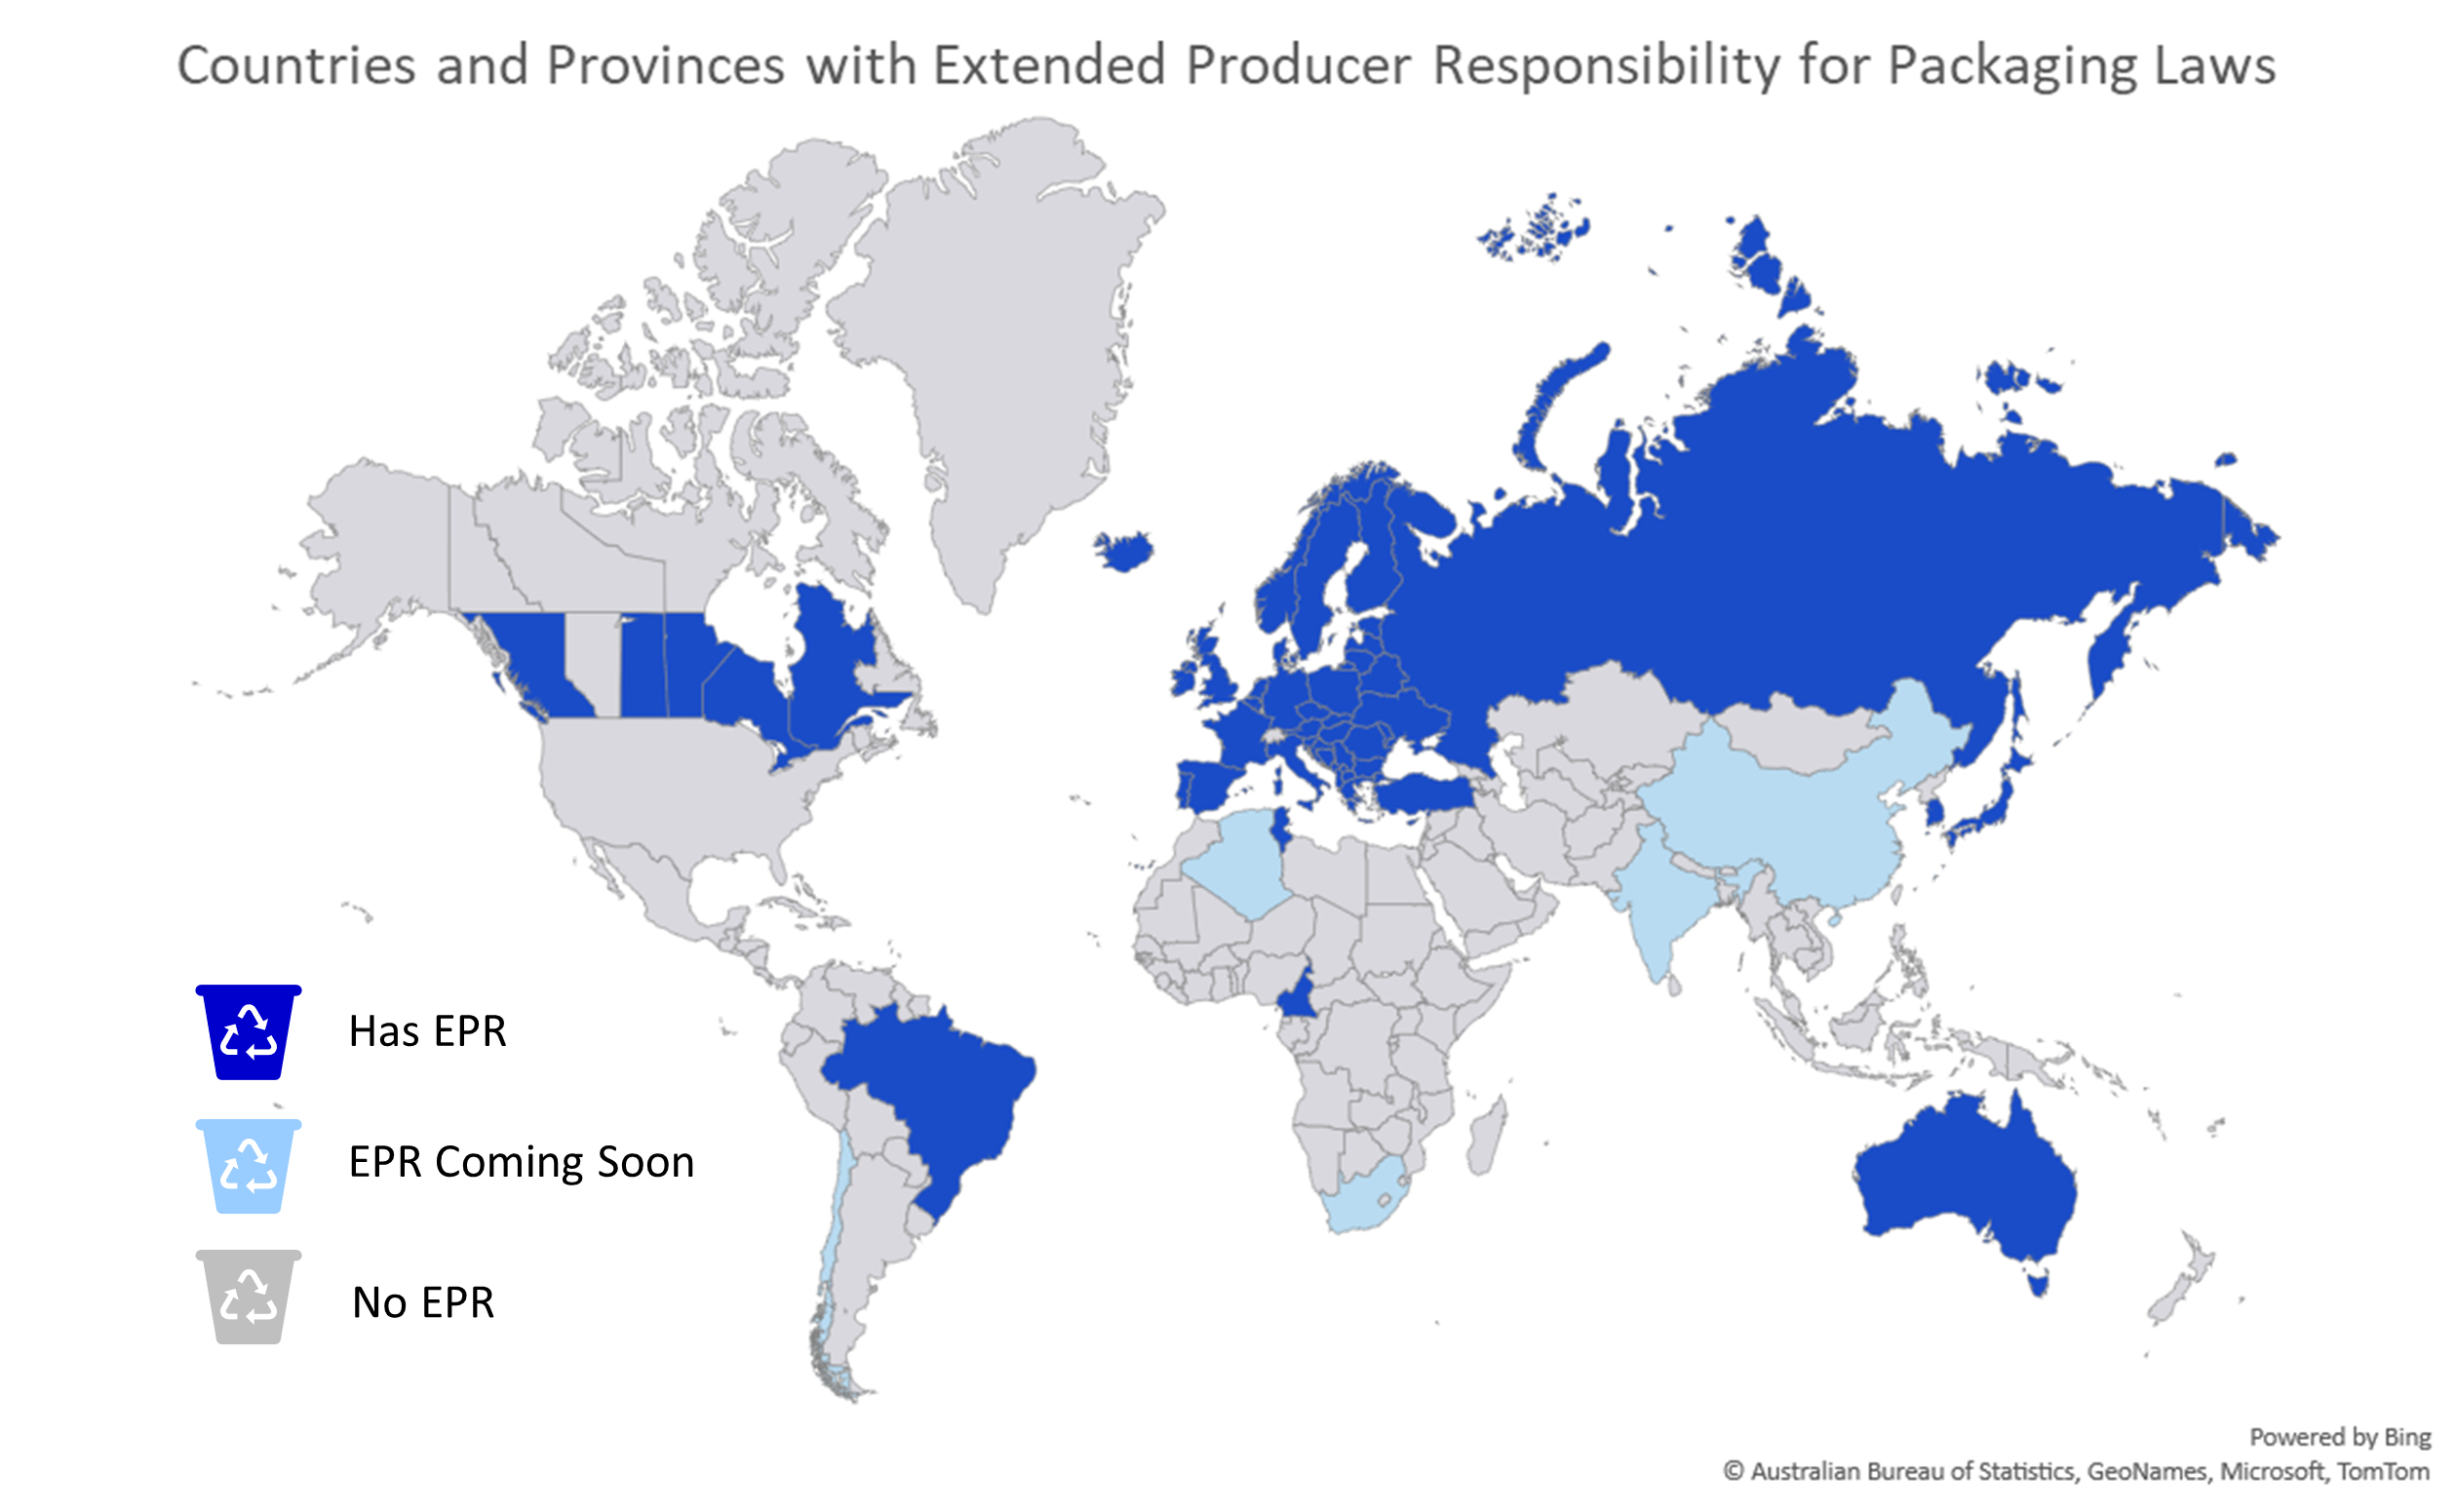 Map of countries & provinces that have EPR for packaging laws